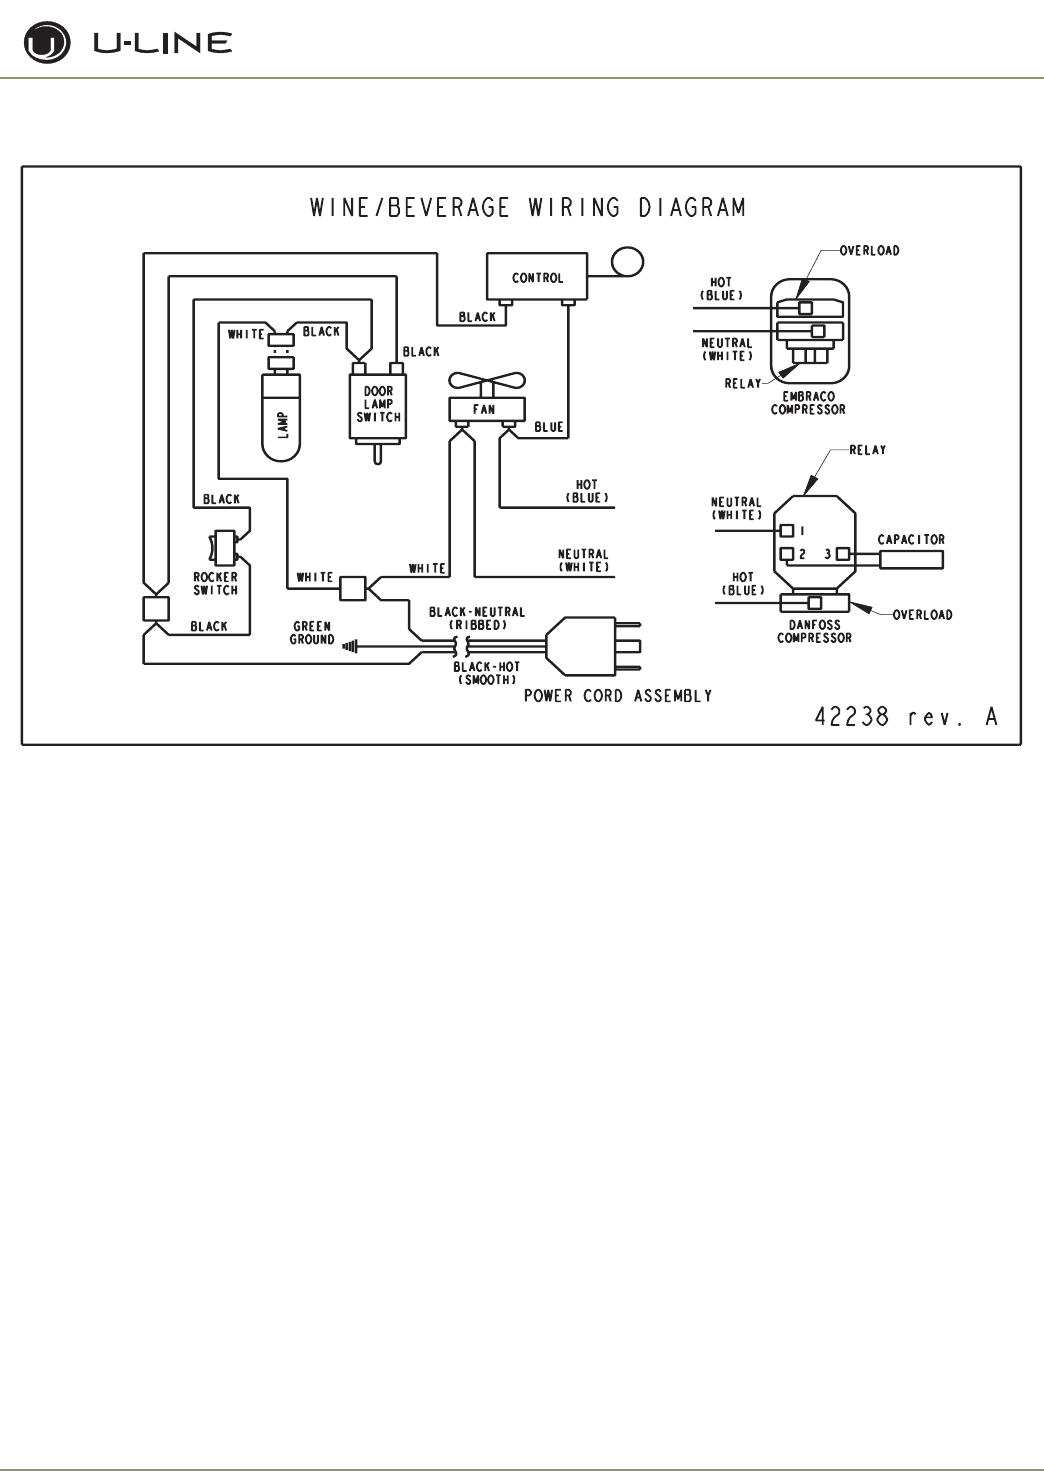 hight resolution of page 64 of u line ice maker u co29f user guide manualsonline com5 3 section 5